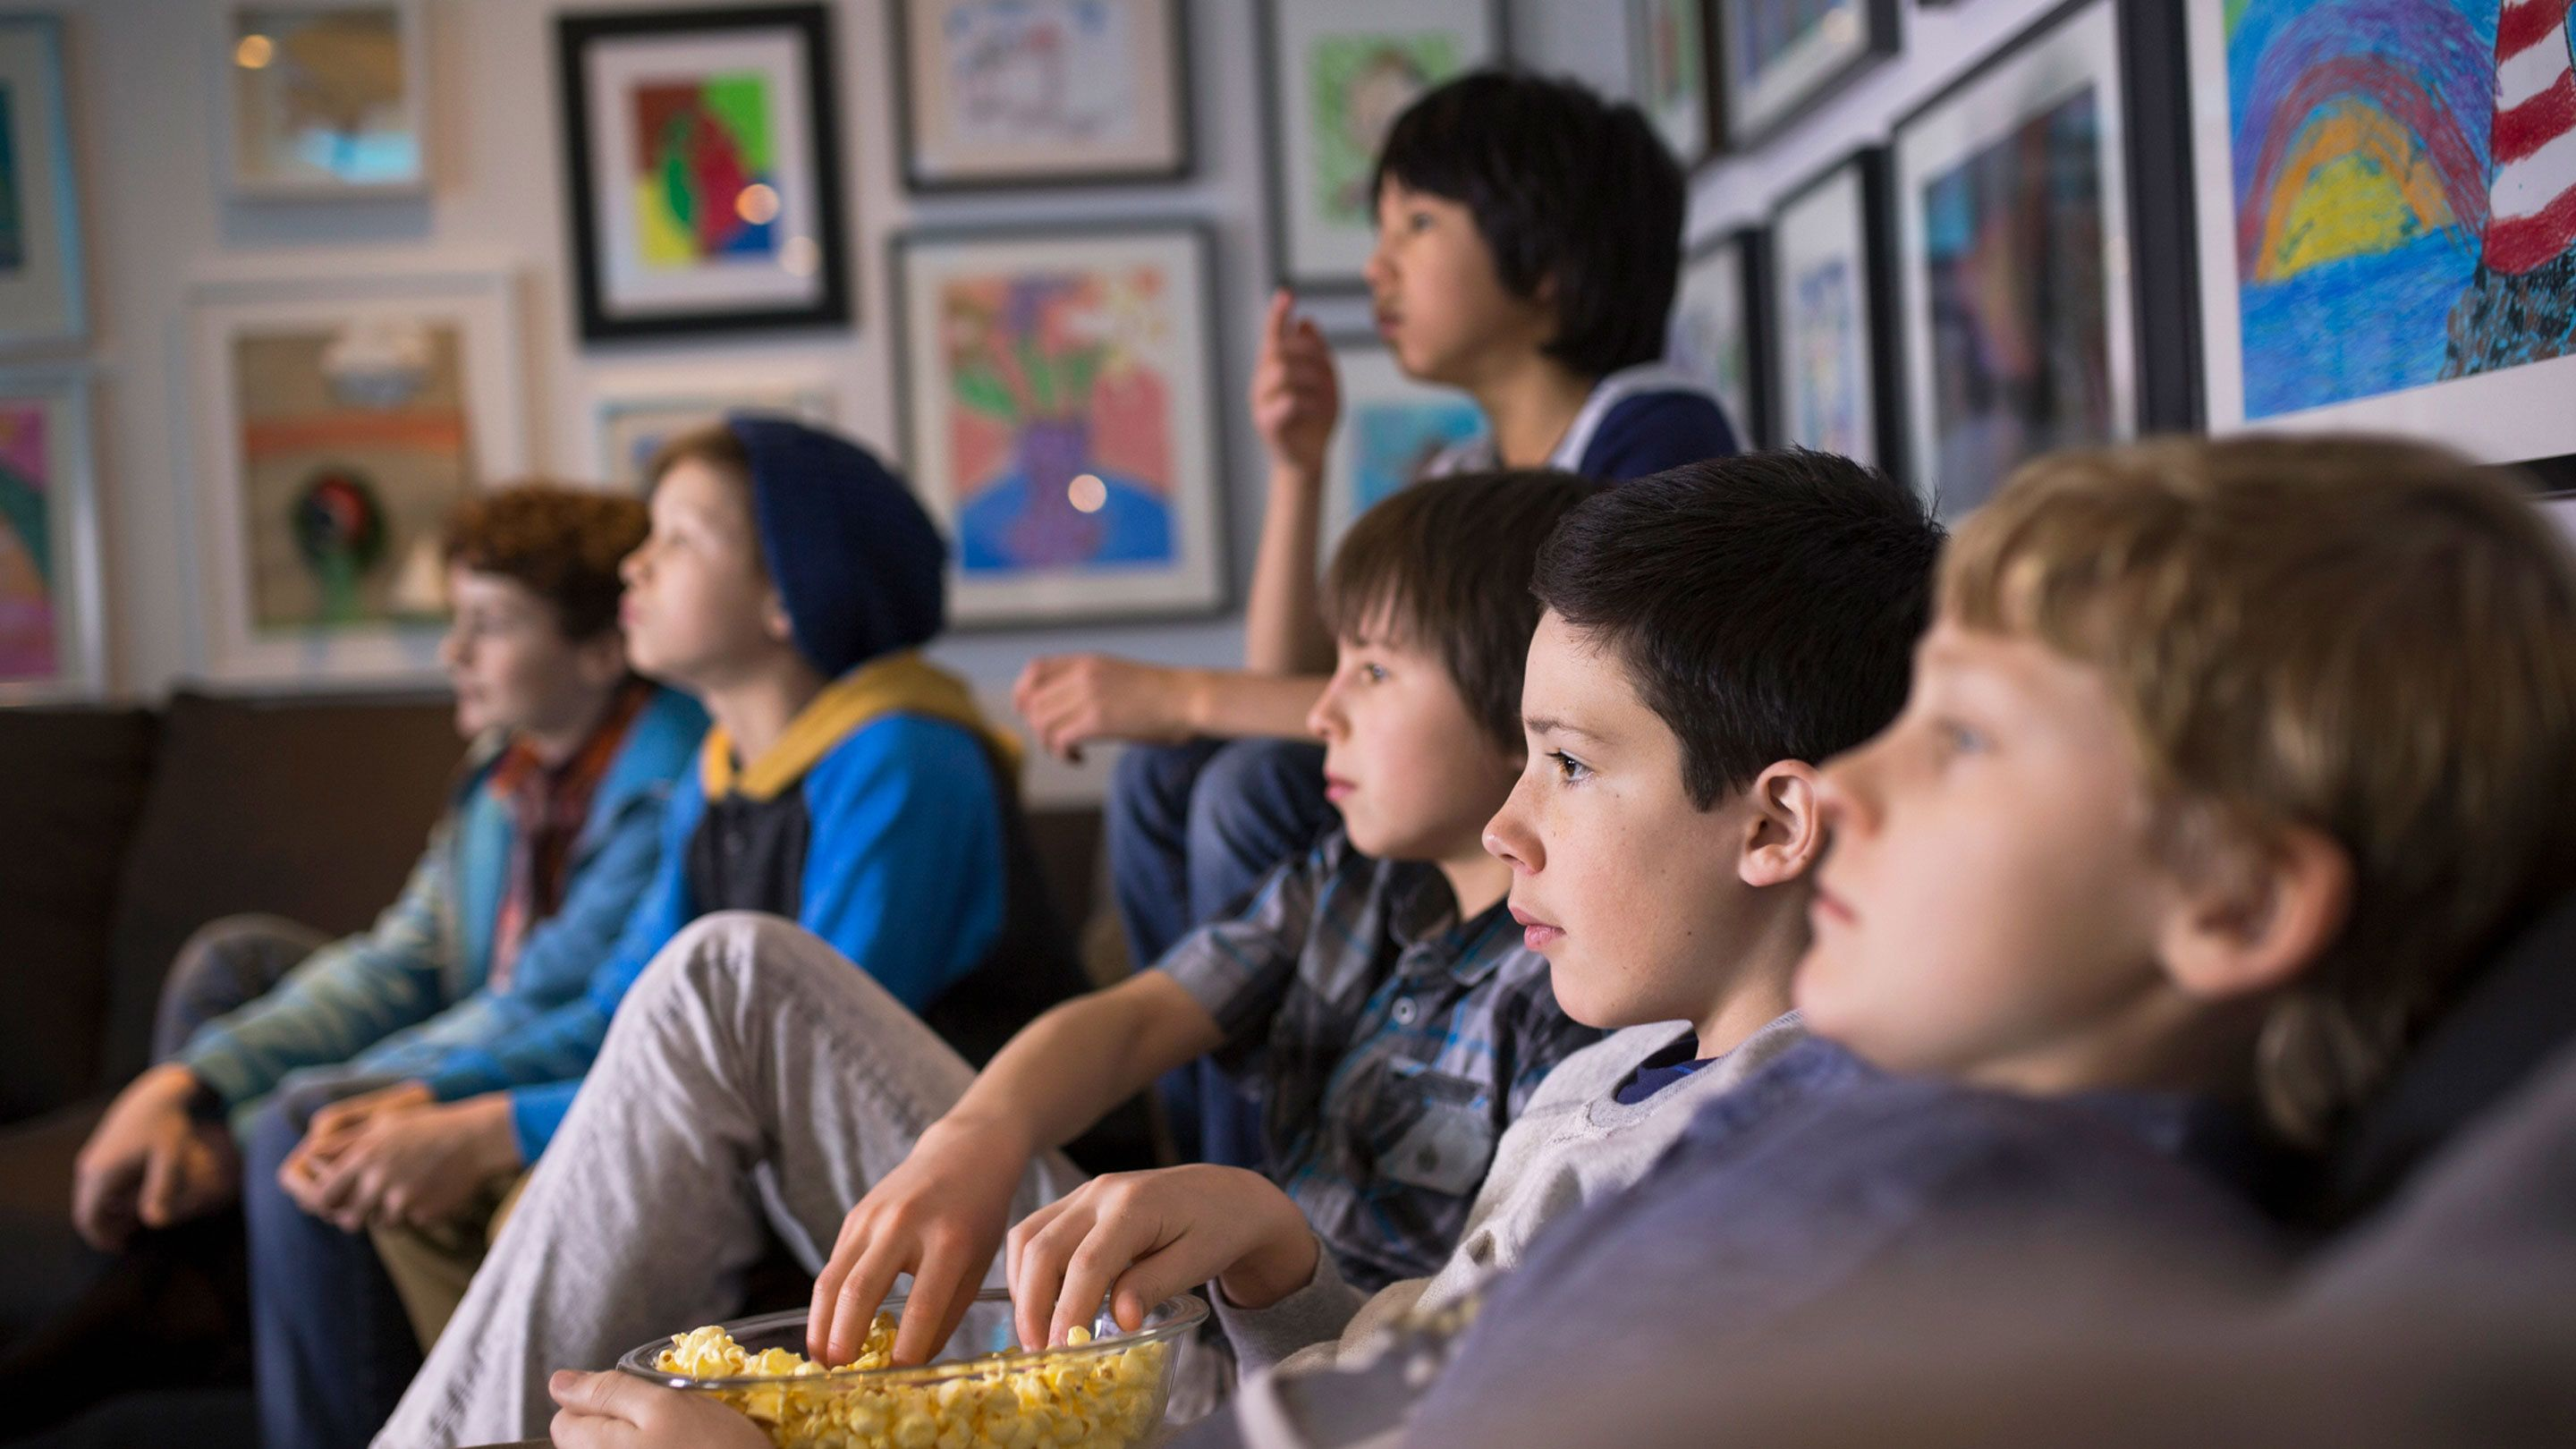 Six preteen boys are sitting on brown couches, eating popcorn, and watching a movie.